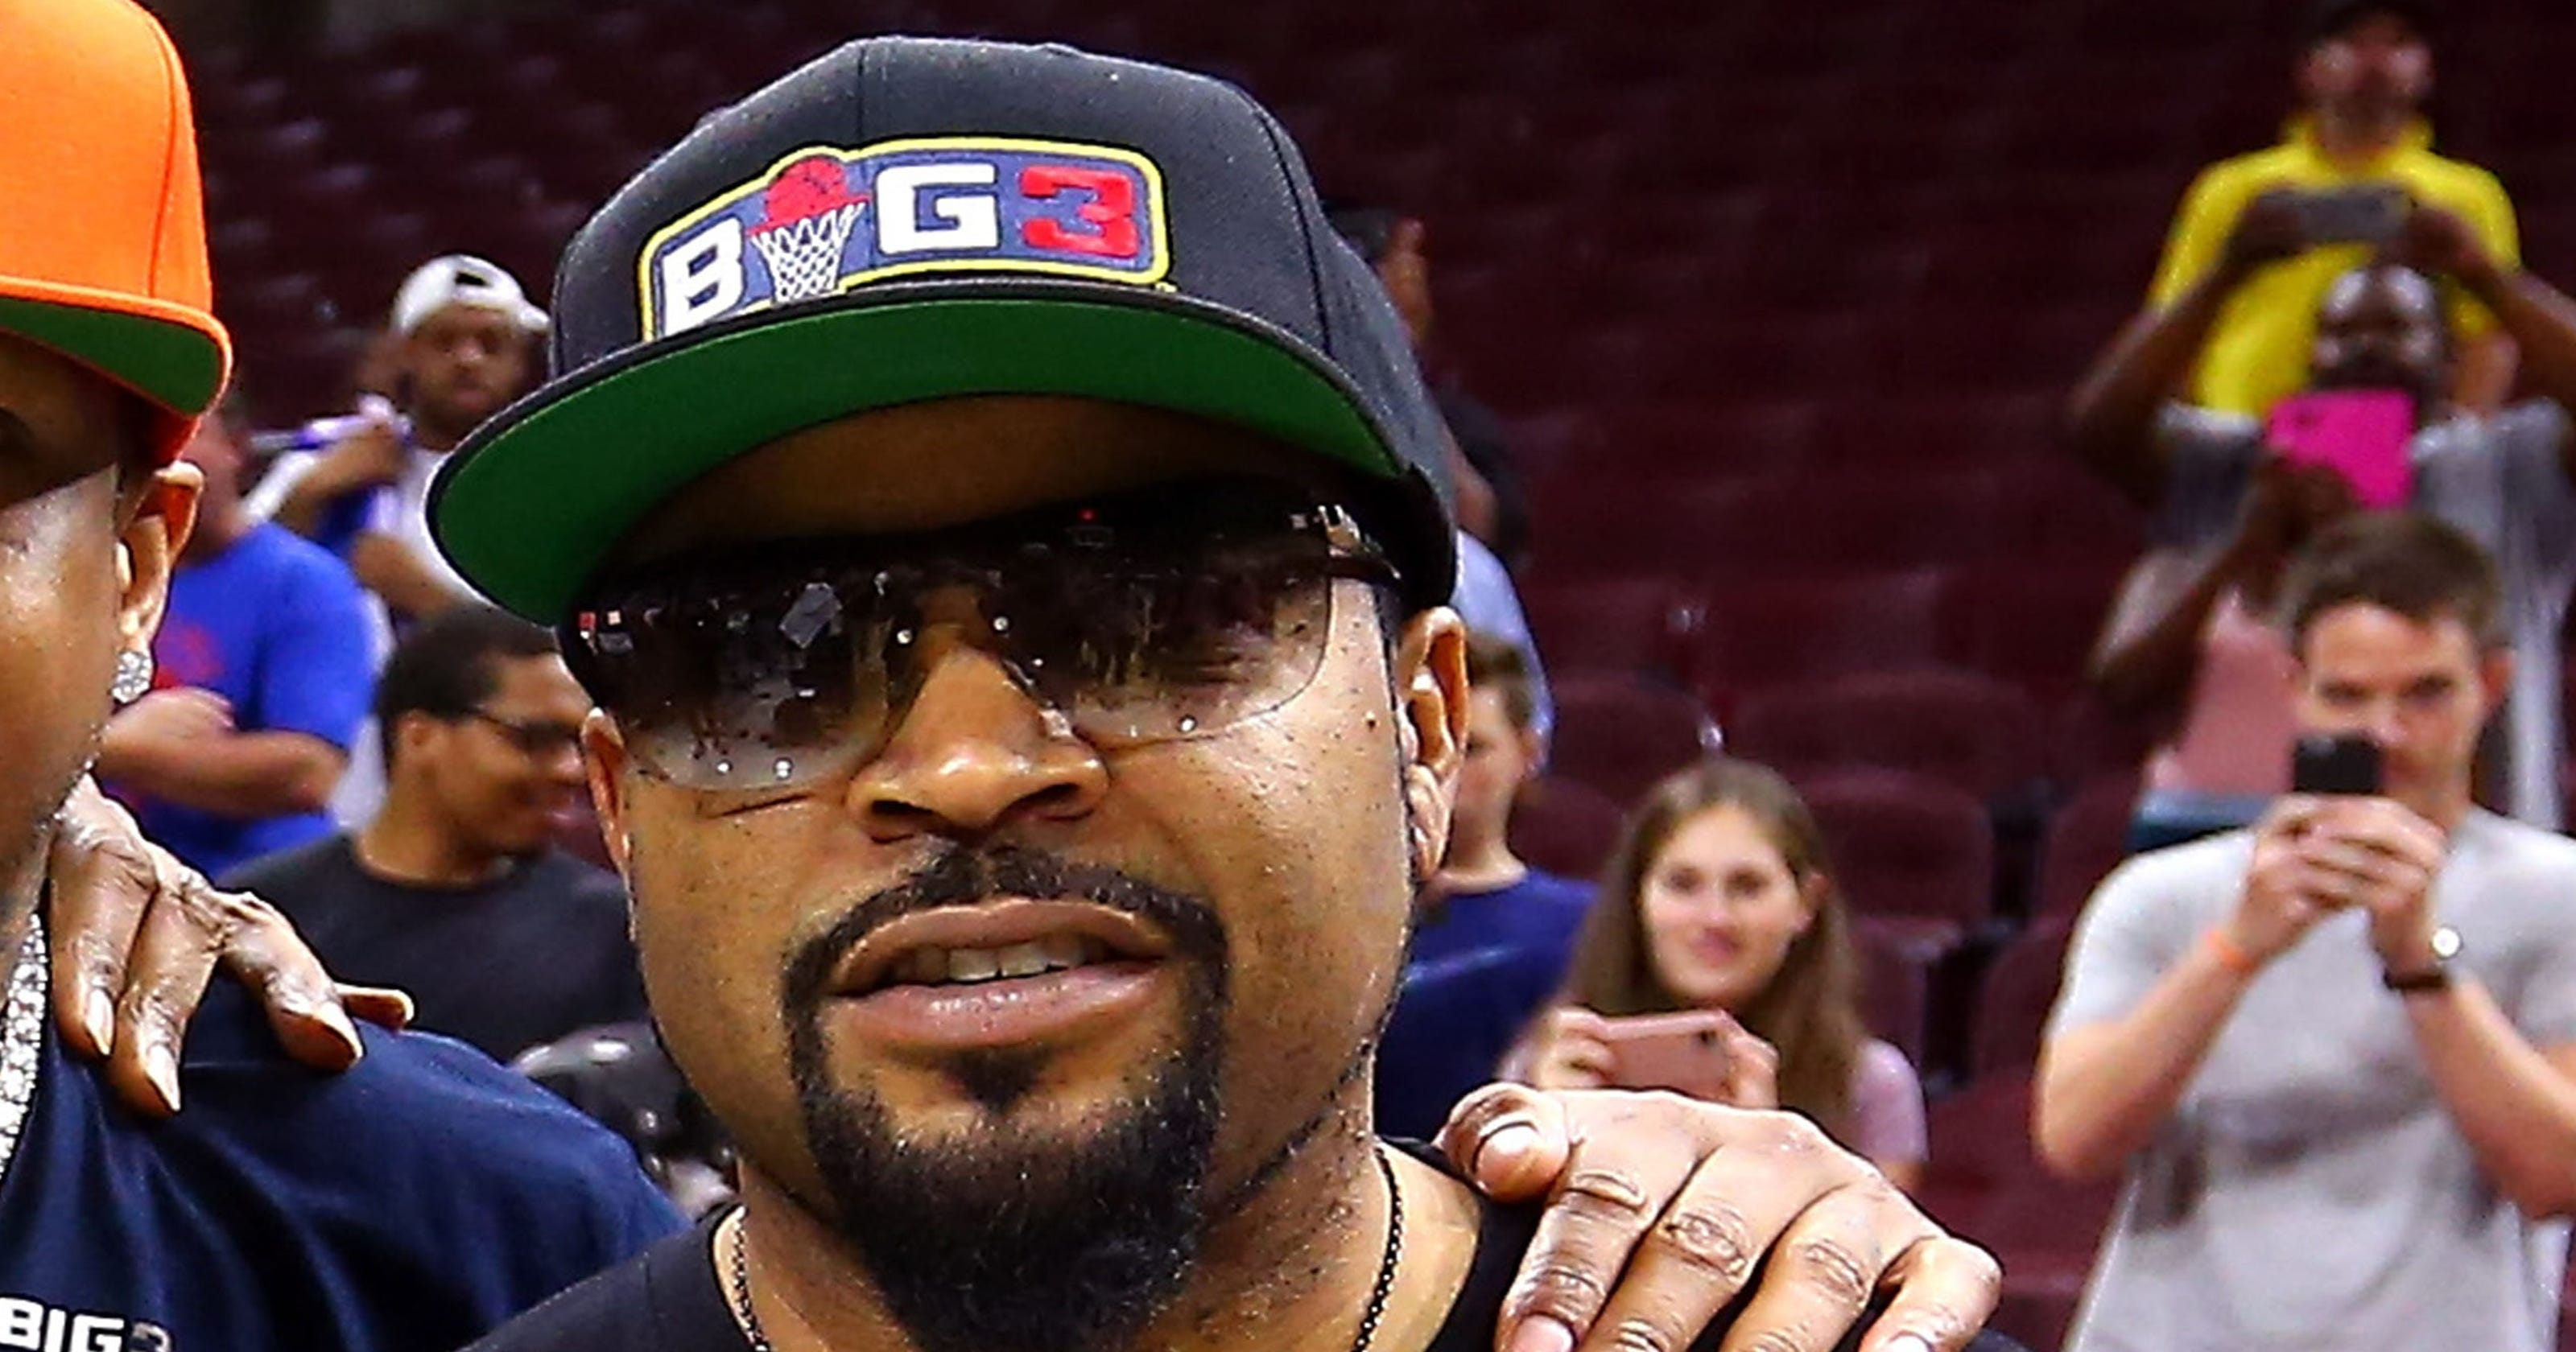 donald trump gets message from ice cube big3 basketball in nyt ad. Black Bedroom Furniture Sets. Home Design Ideas